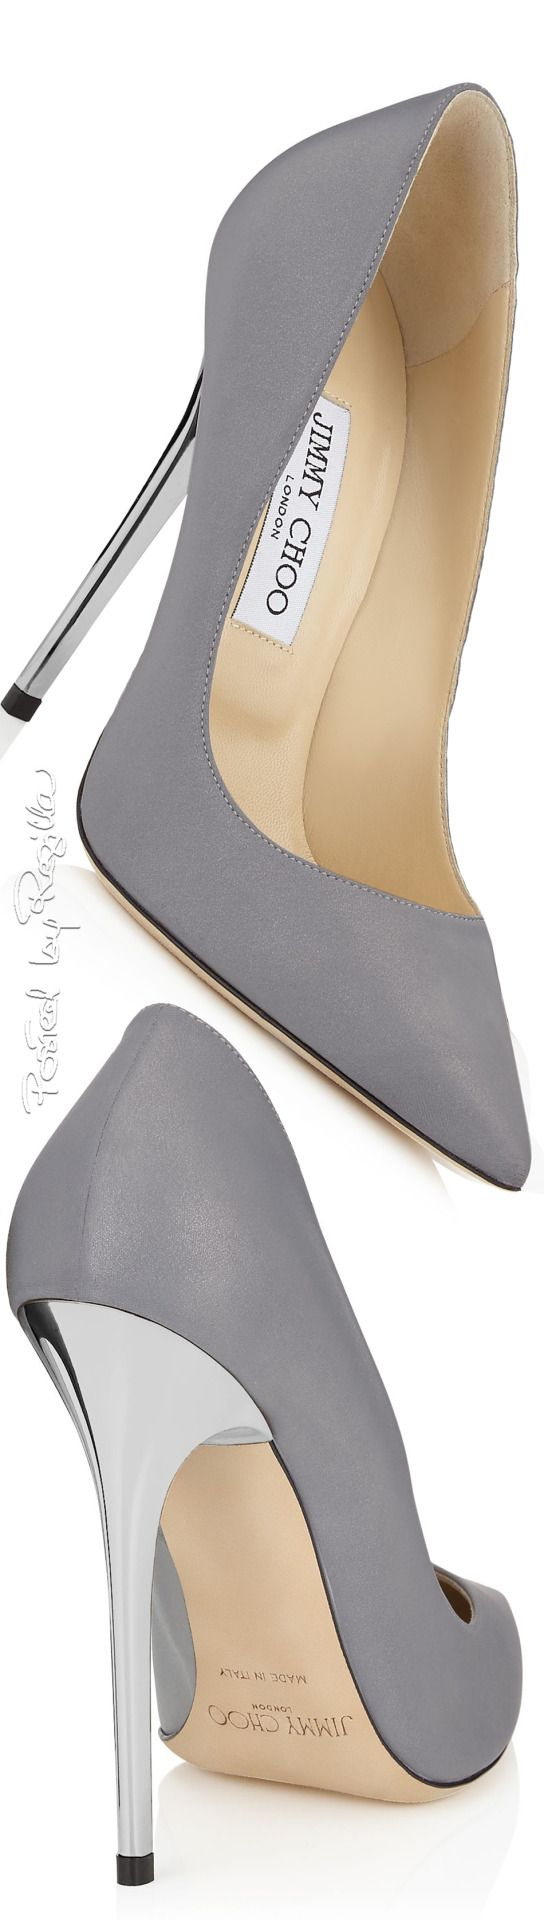 These are fantastic, and I would love a pair of gray heels-way out of my price range but still fabulous www.utelier.com